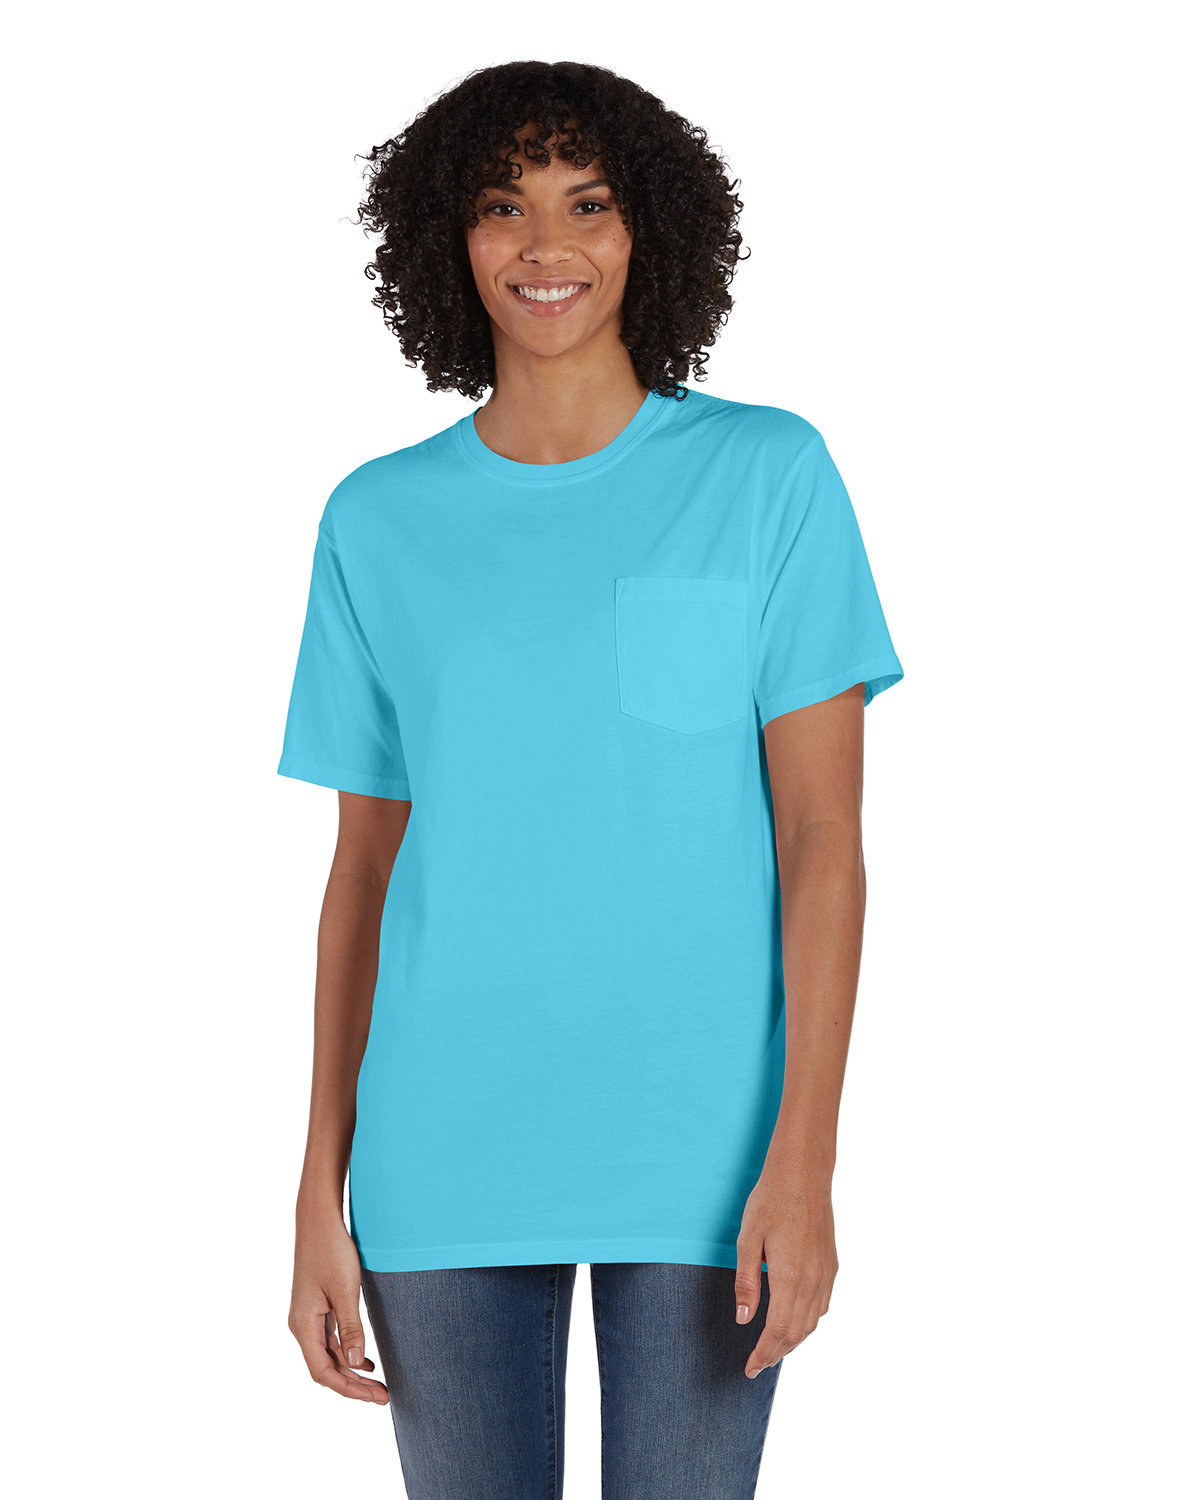 ComfortWash by Hanes Unisex 5.5 oz., 100% Ringspun Cotton Garment-Dyed T-Shirt with Pocket FRESHWATER